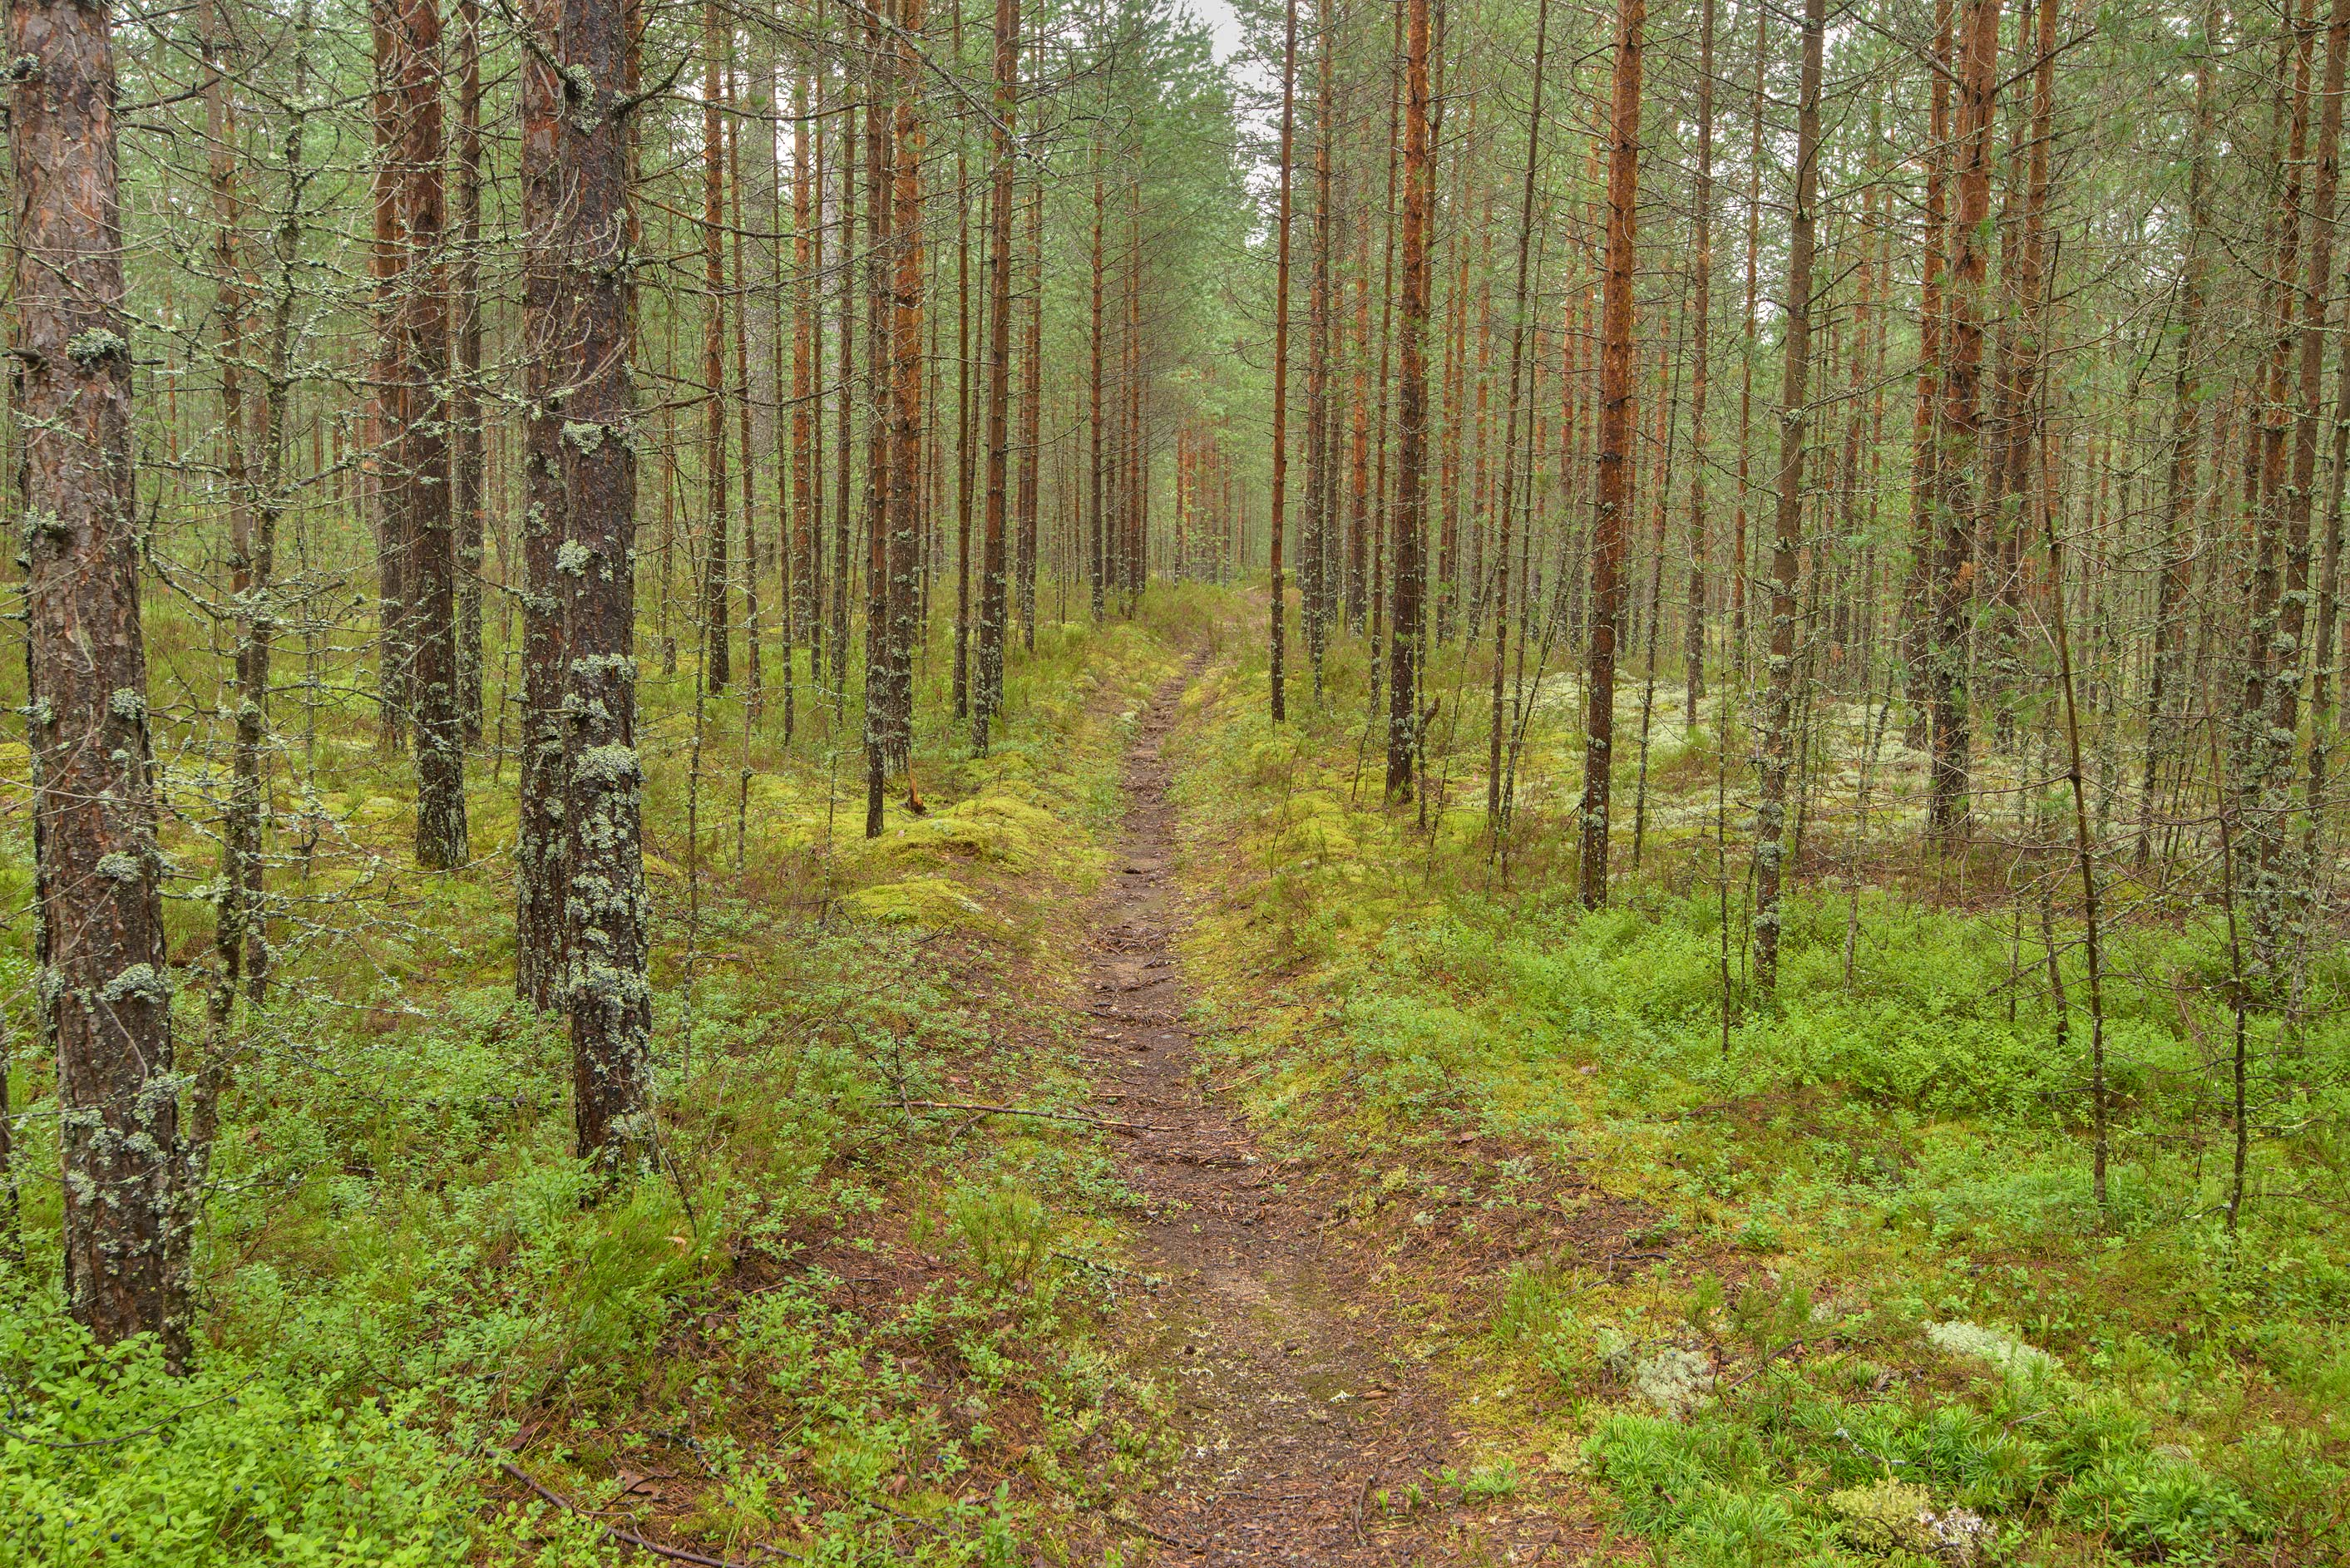 Cutting in a pine forest near Orekhovo, 40 miles north from St.Petersburg. Russia